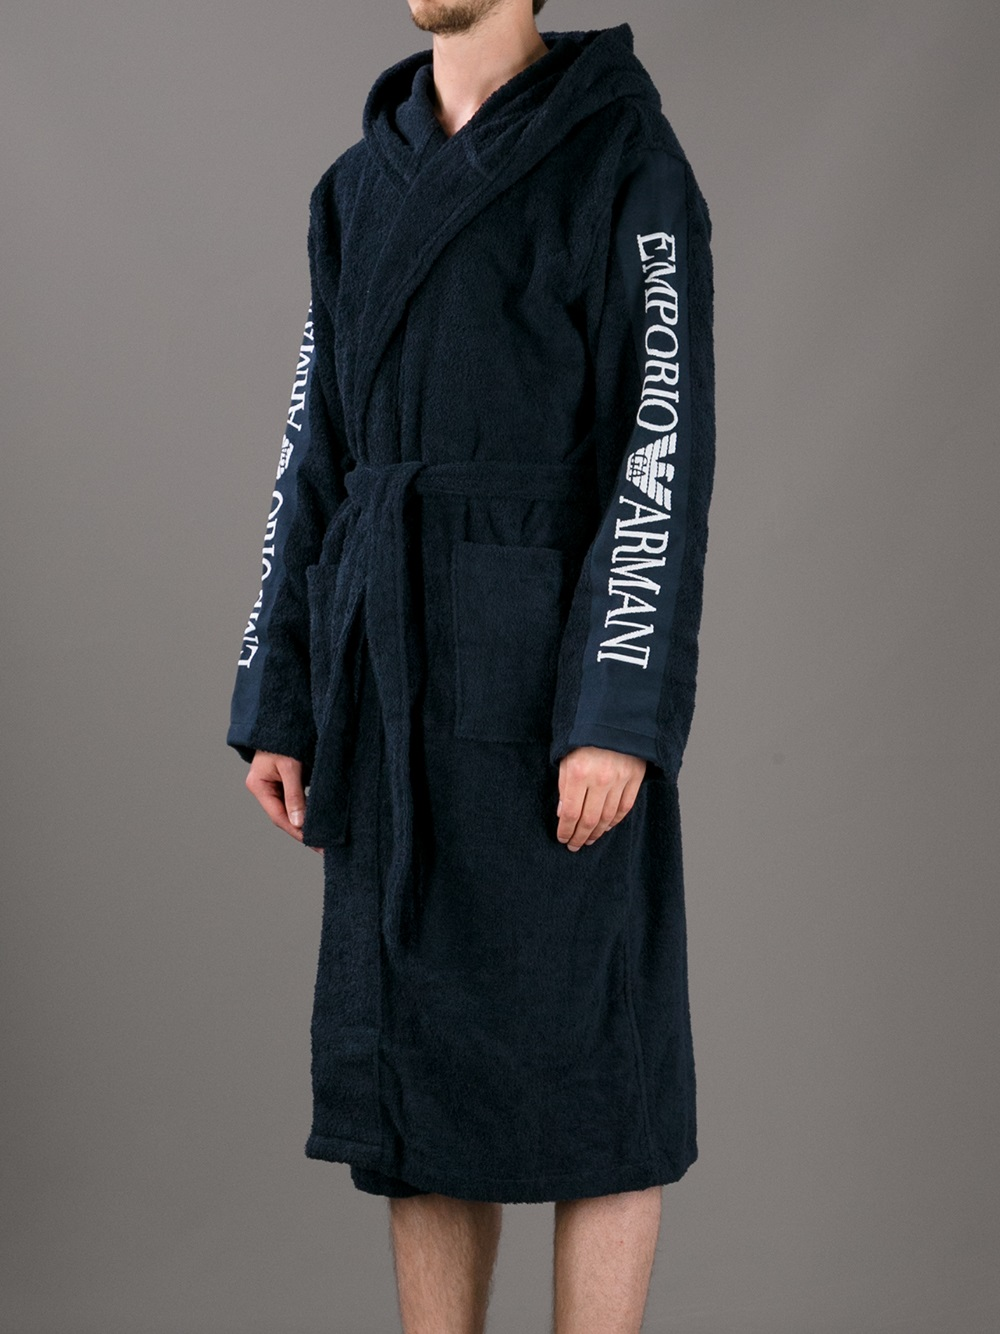 cd05b8b3bb Emporio Armani Logo Robe in Blue for Men - Lyst